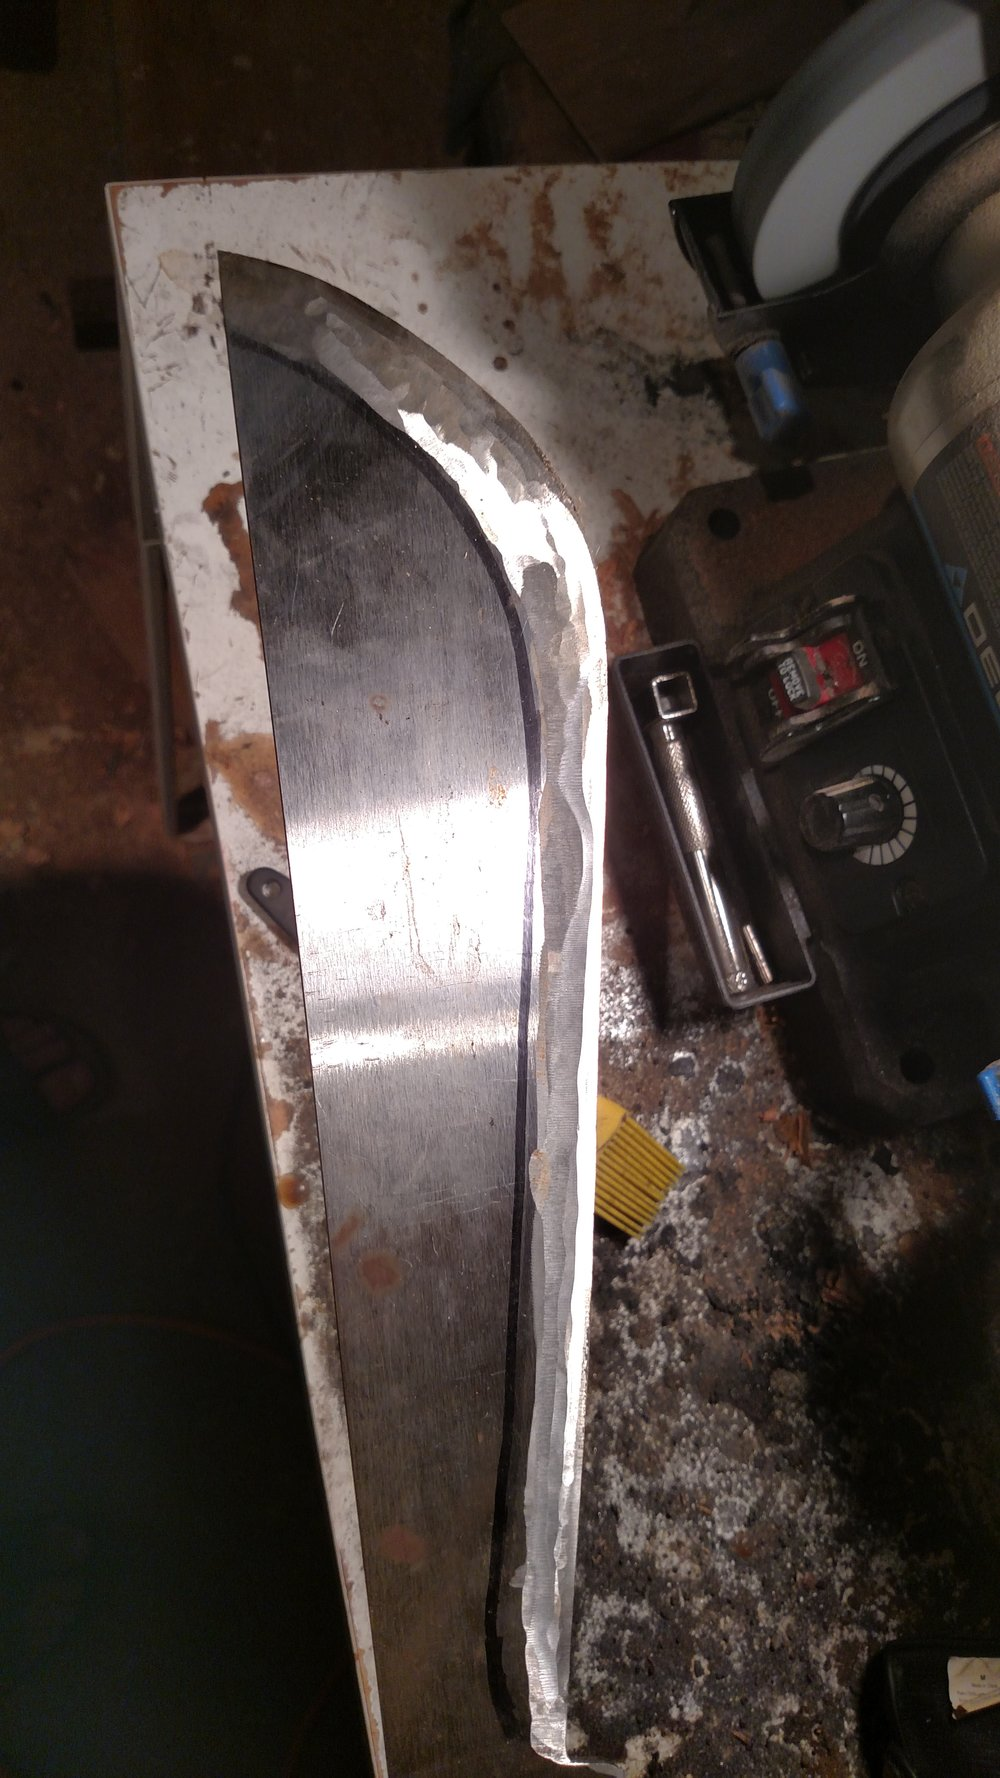 I shaped the blade from a piece of O2 bar stock I ordered from McMaster Carr.